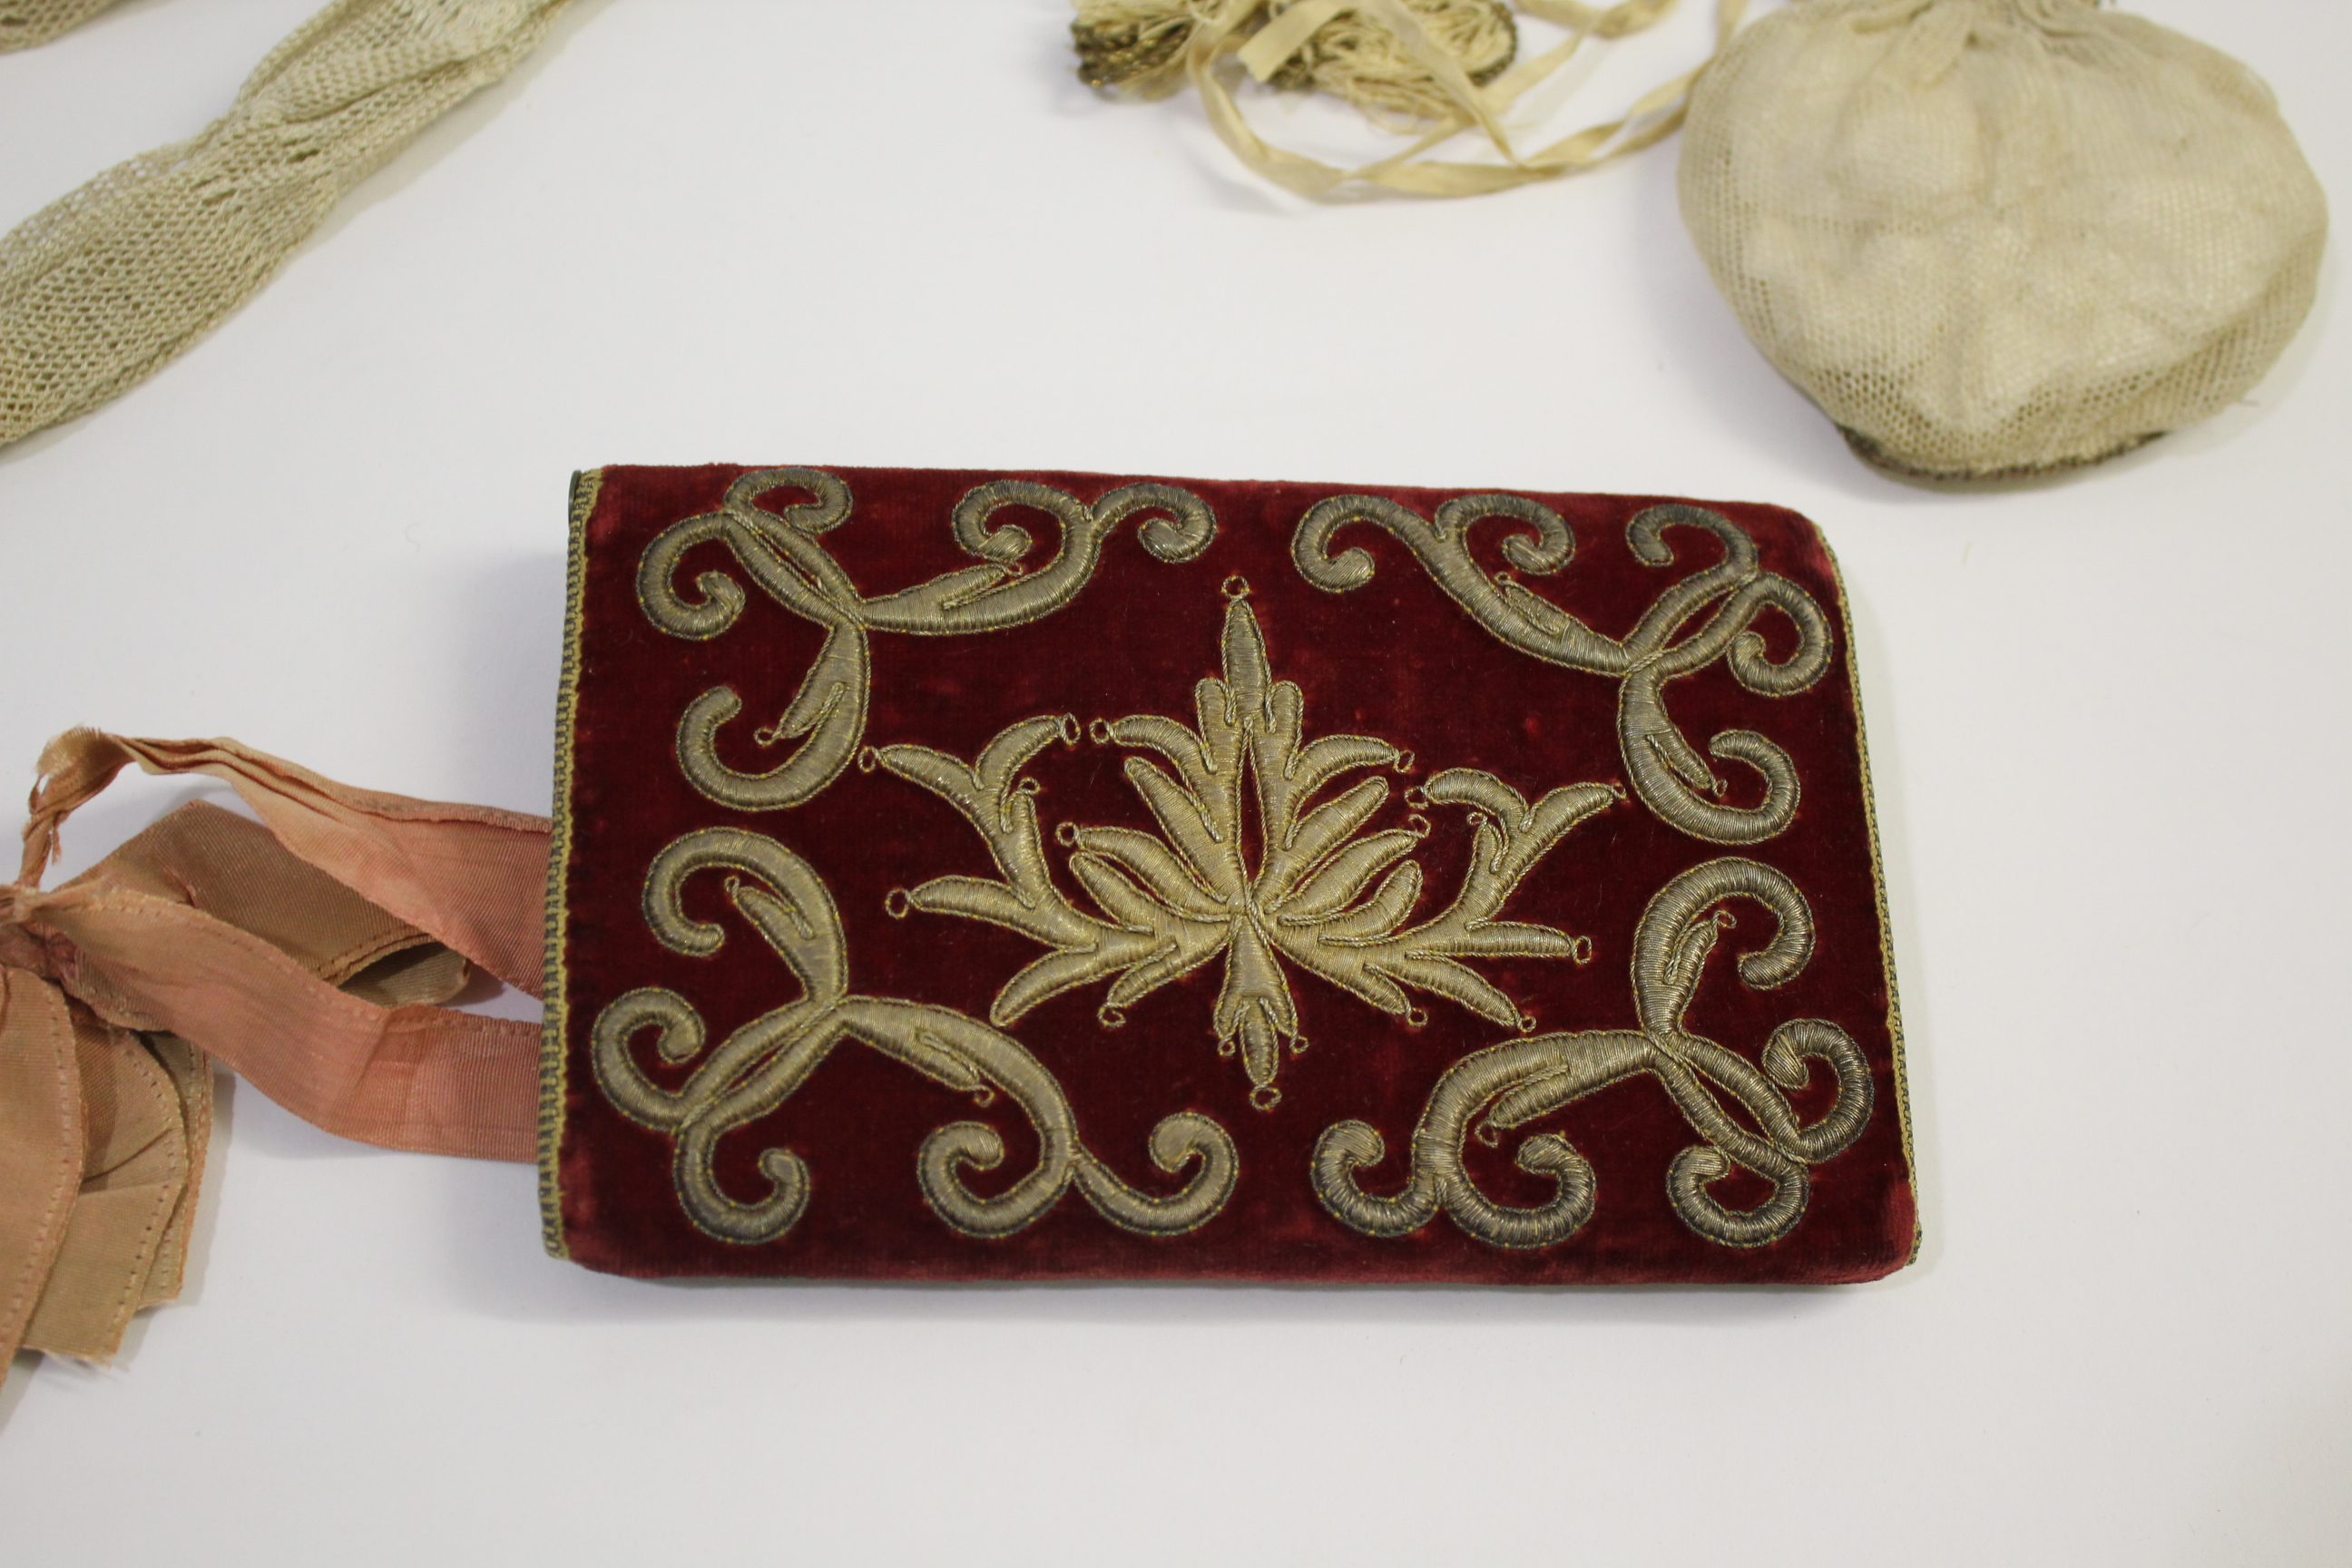 18THC CARD CASE & VINTAGE PURSES a late 18thc dark red velvet card case with metallic thread - Image 4 of 11